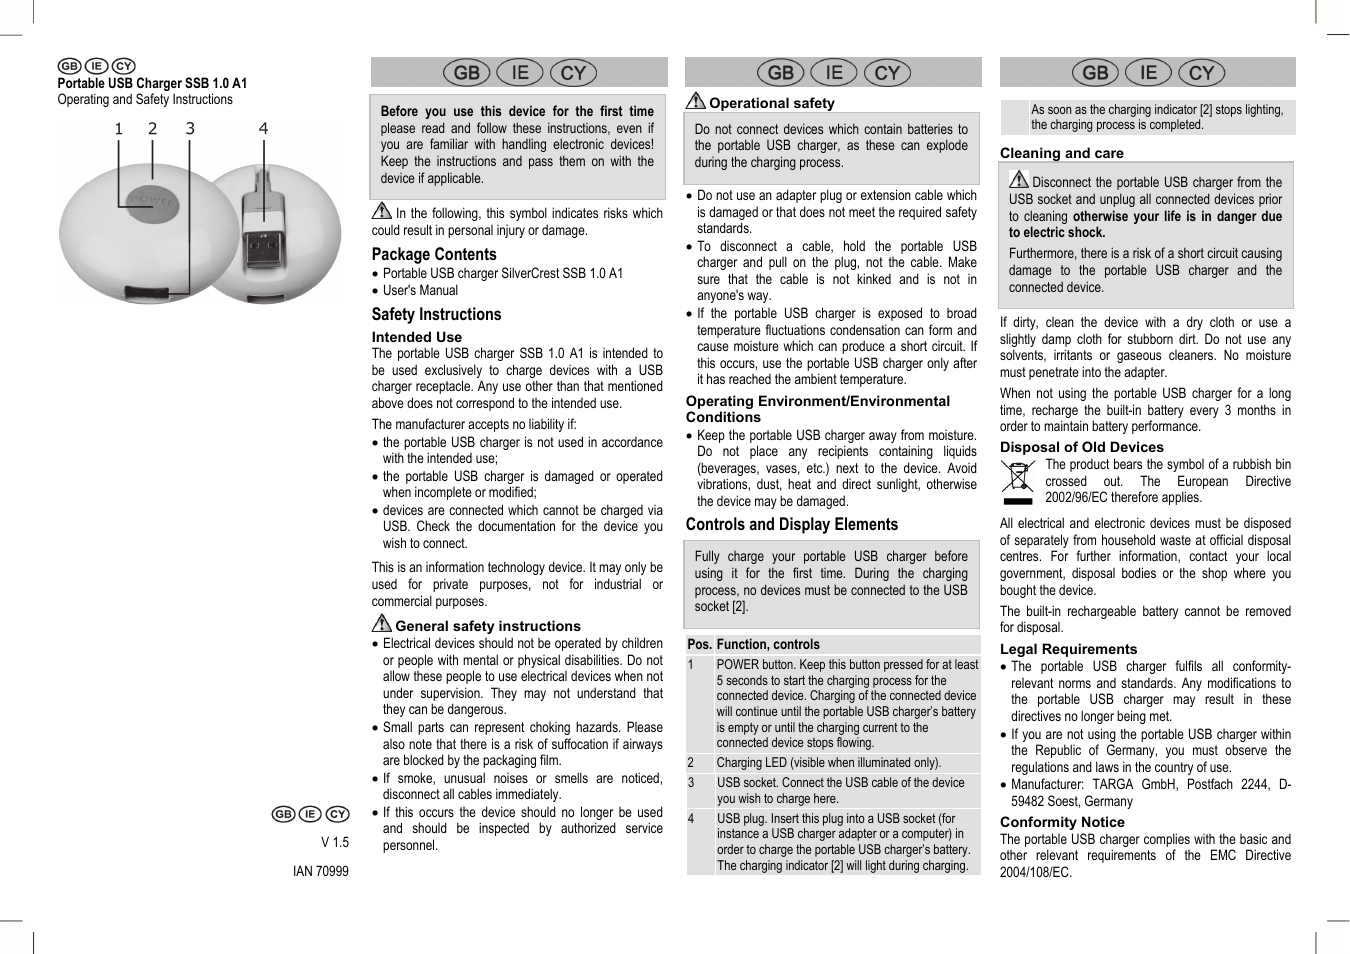 Silvercrest Ssb 10 A1 User Manual 4 Pages Nikon D40 Usb Cable Schematic